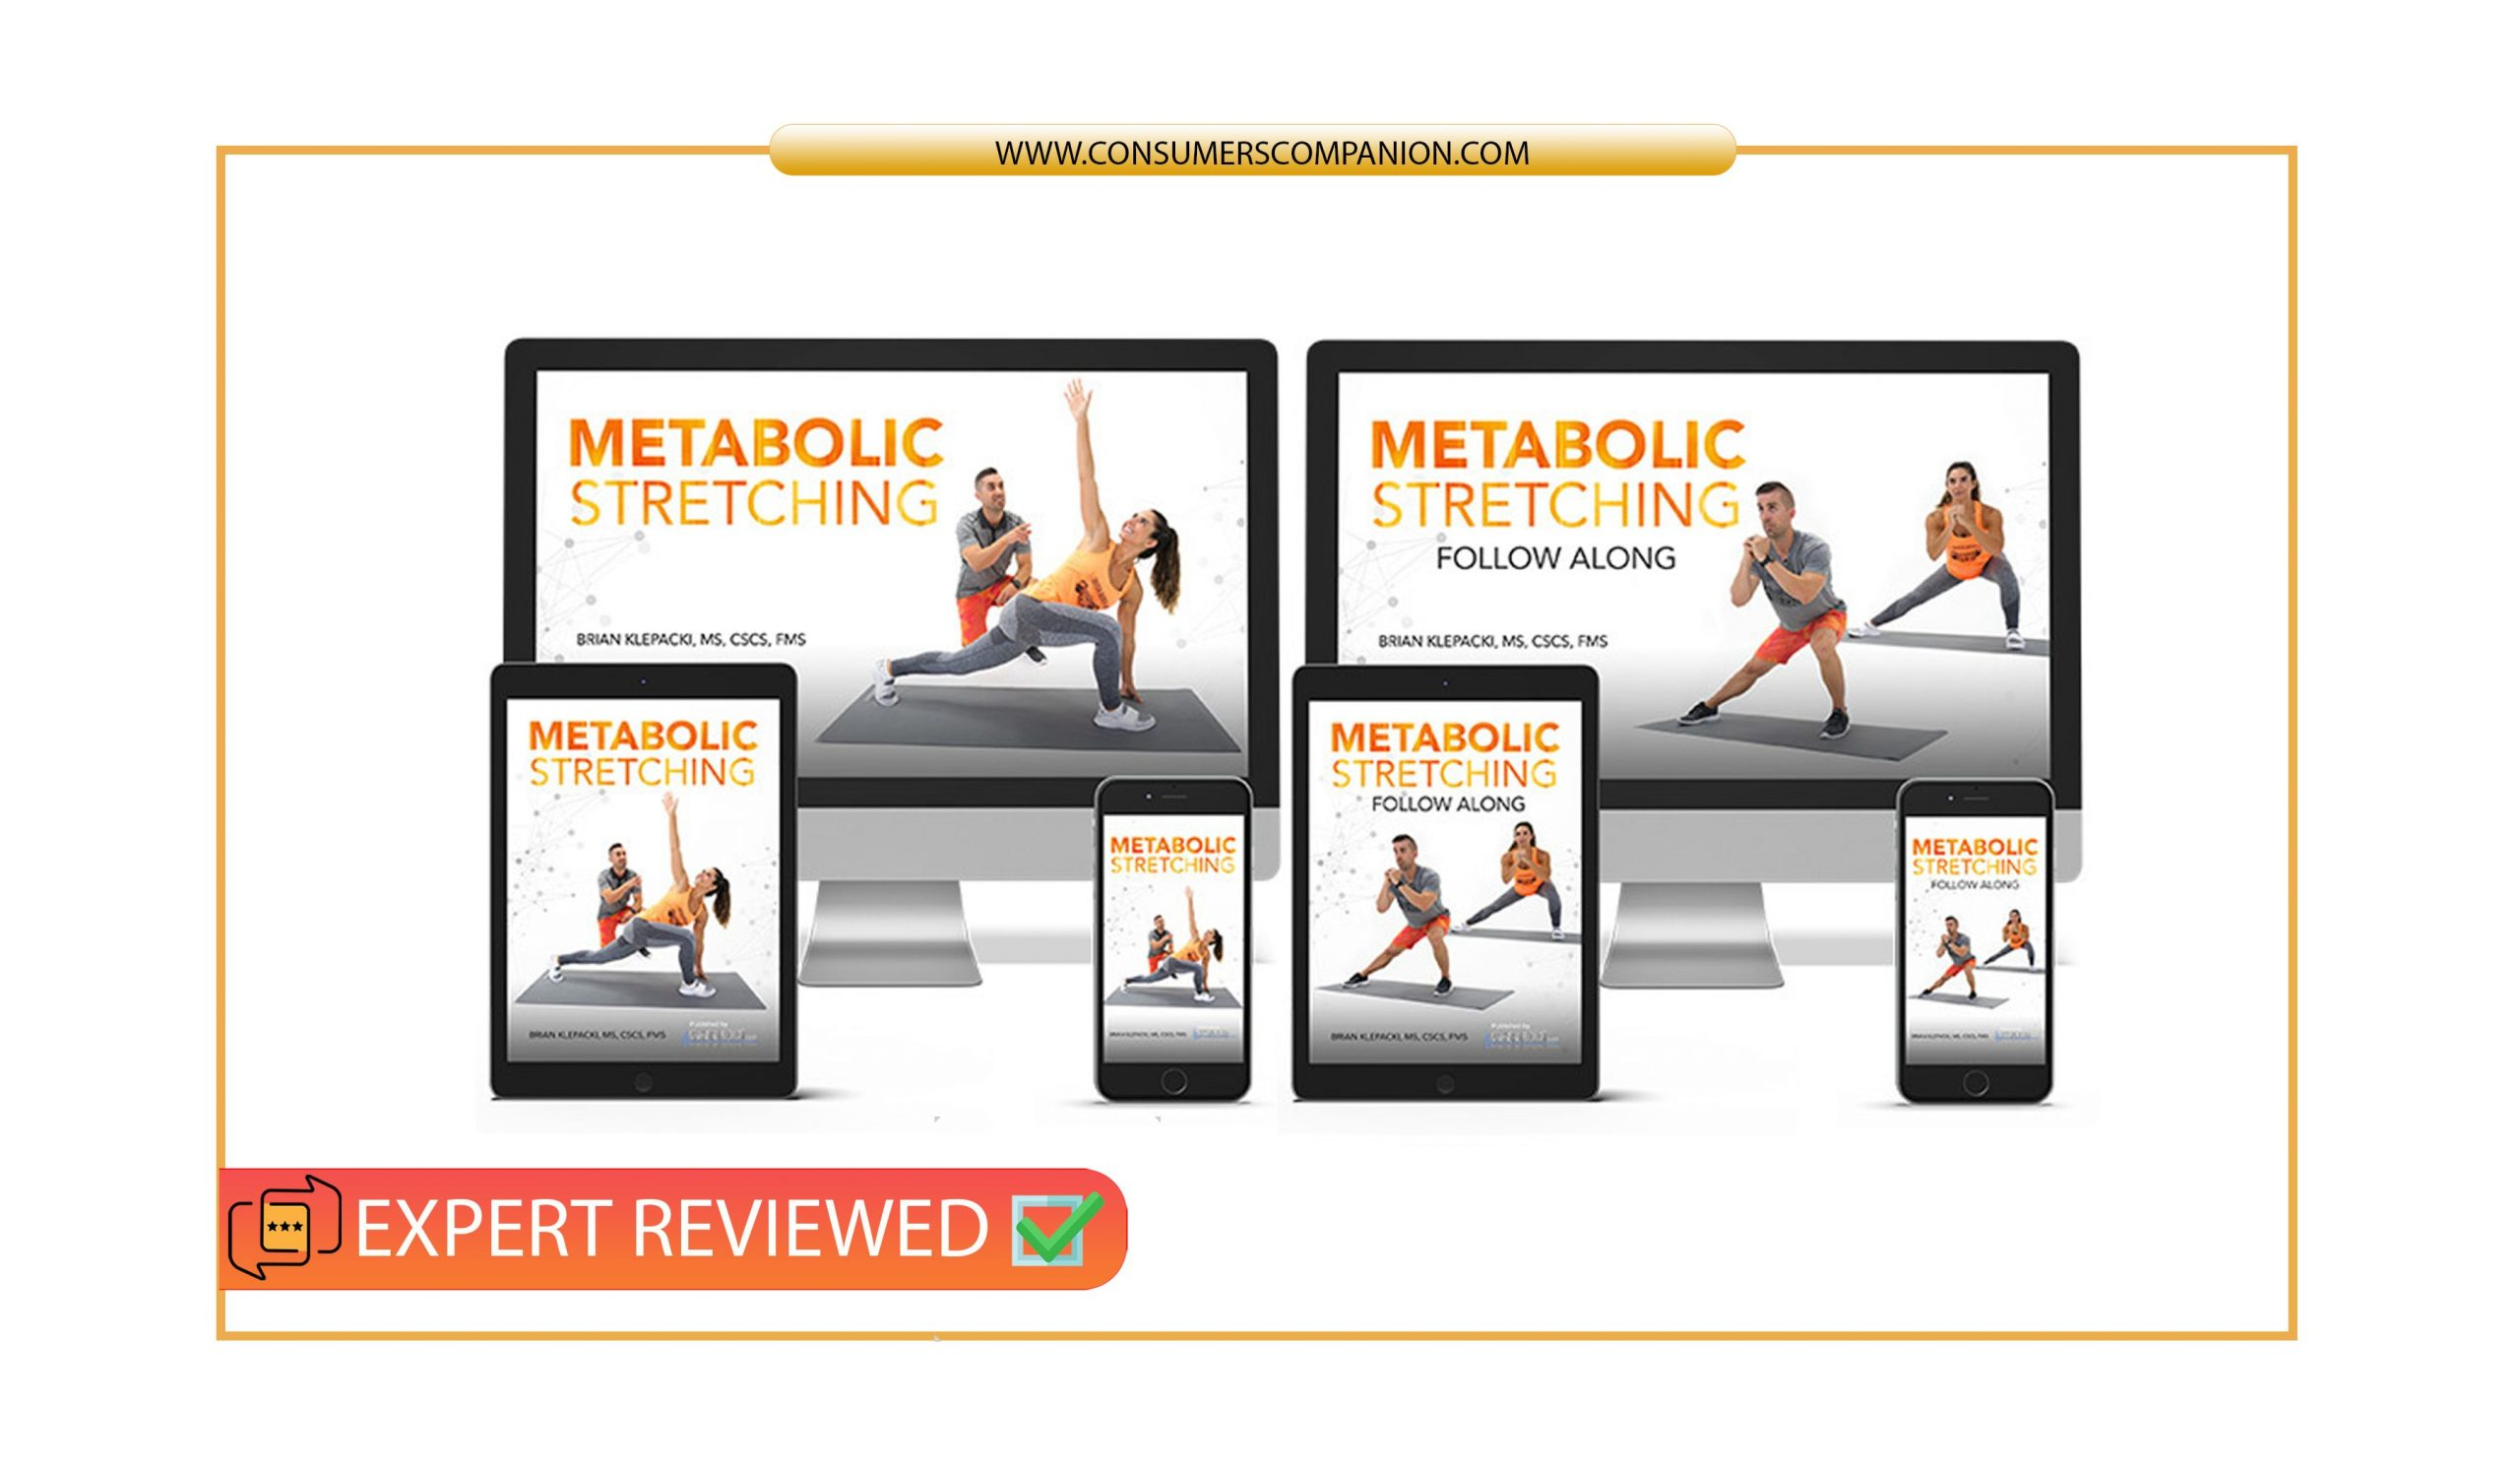 Metabolic Stretching Reviews